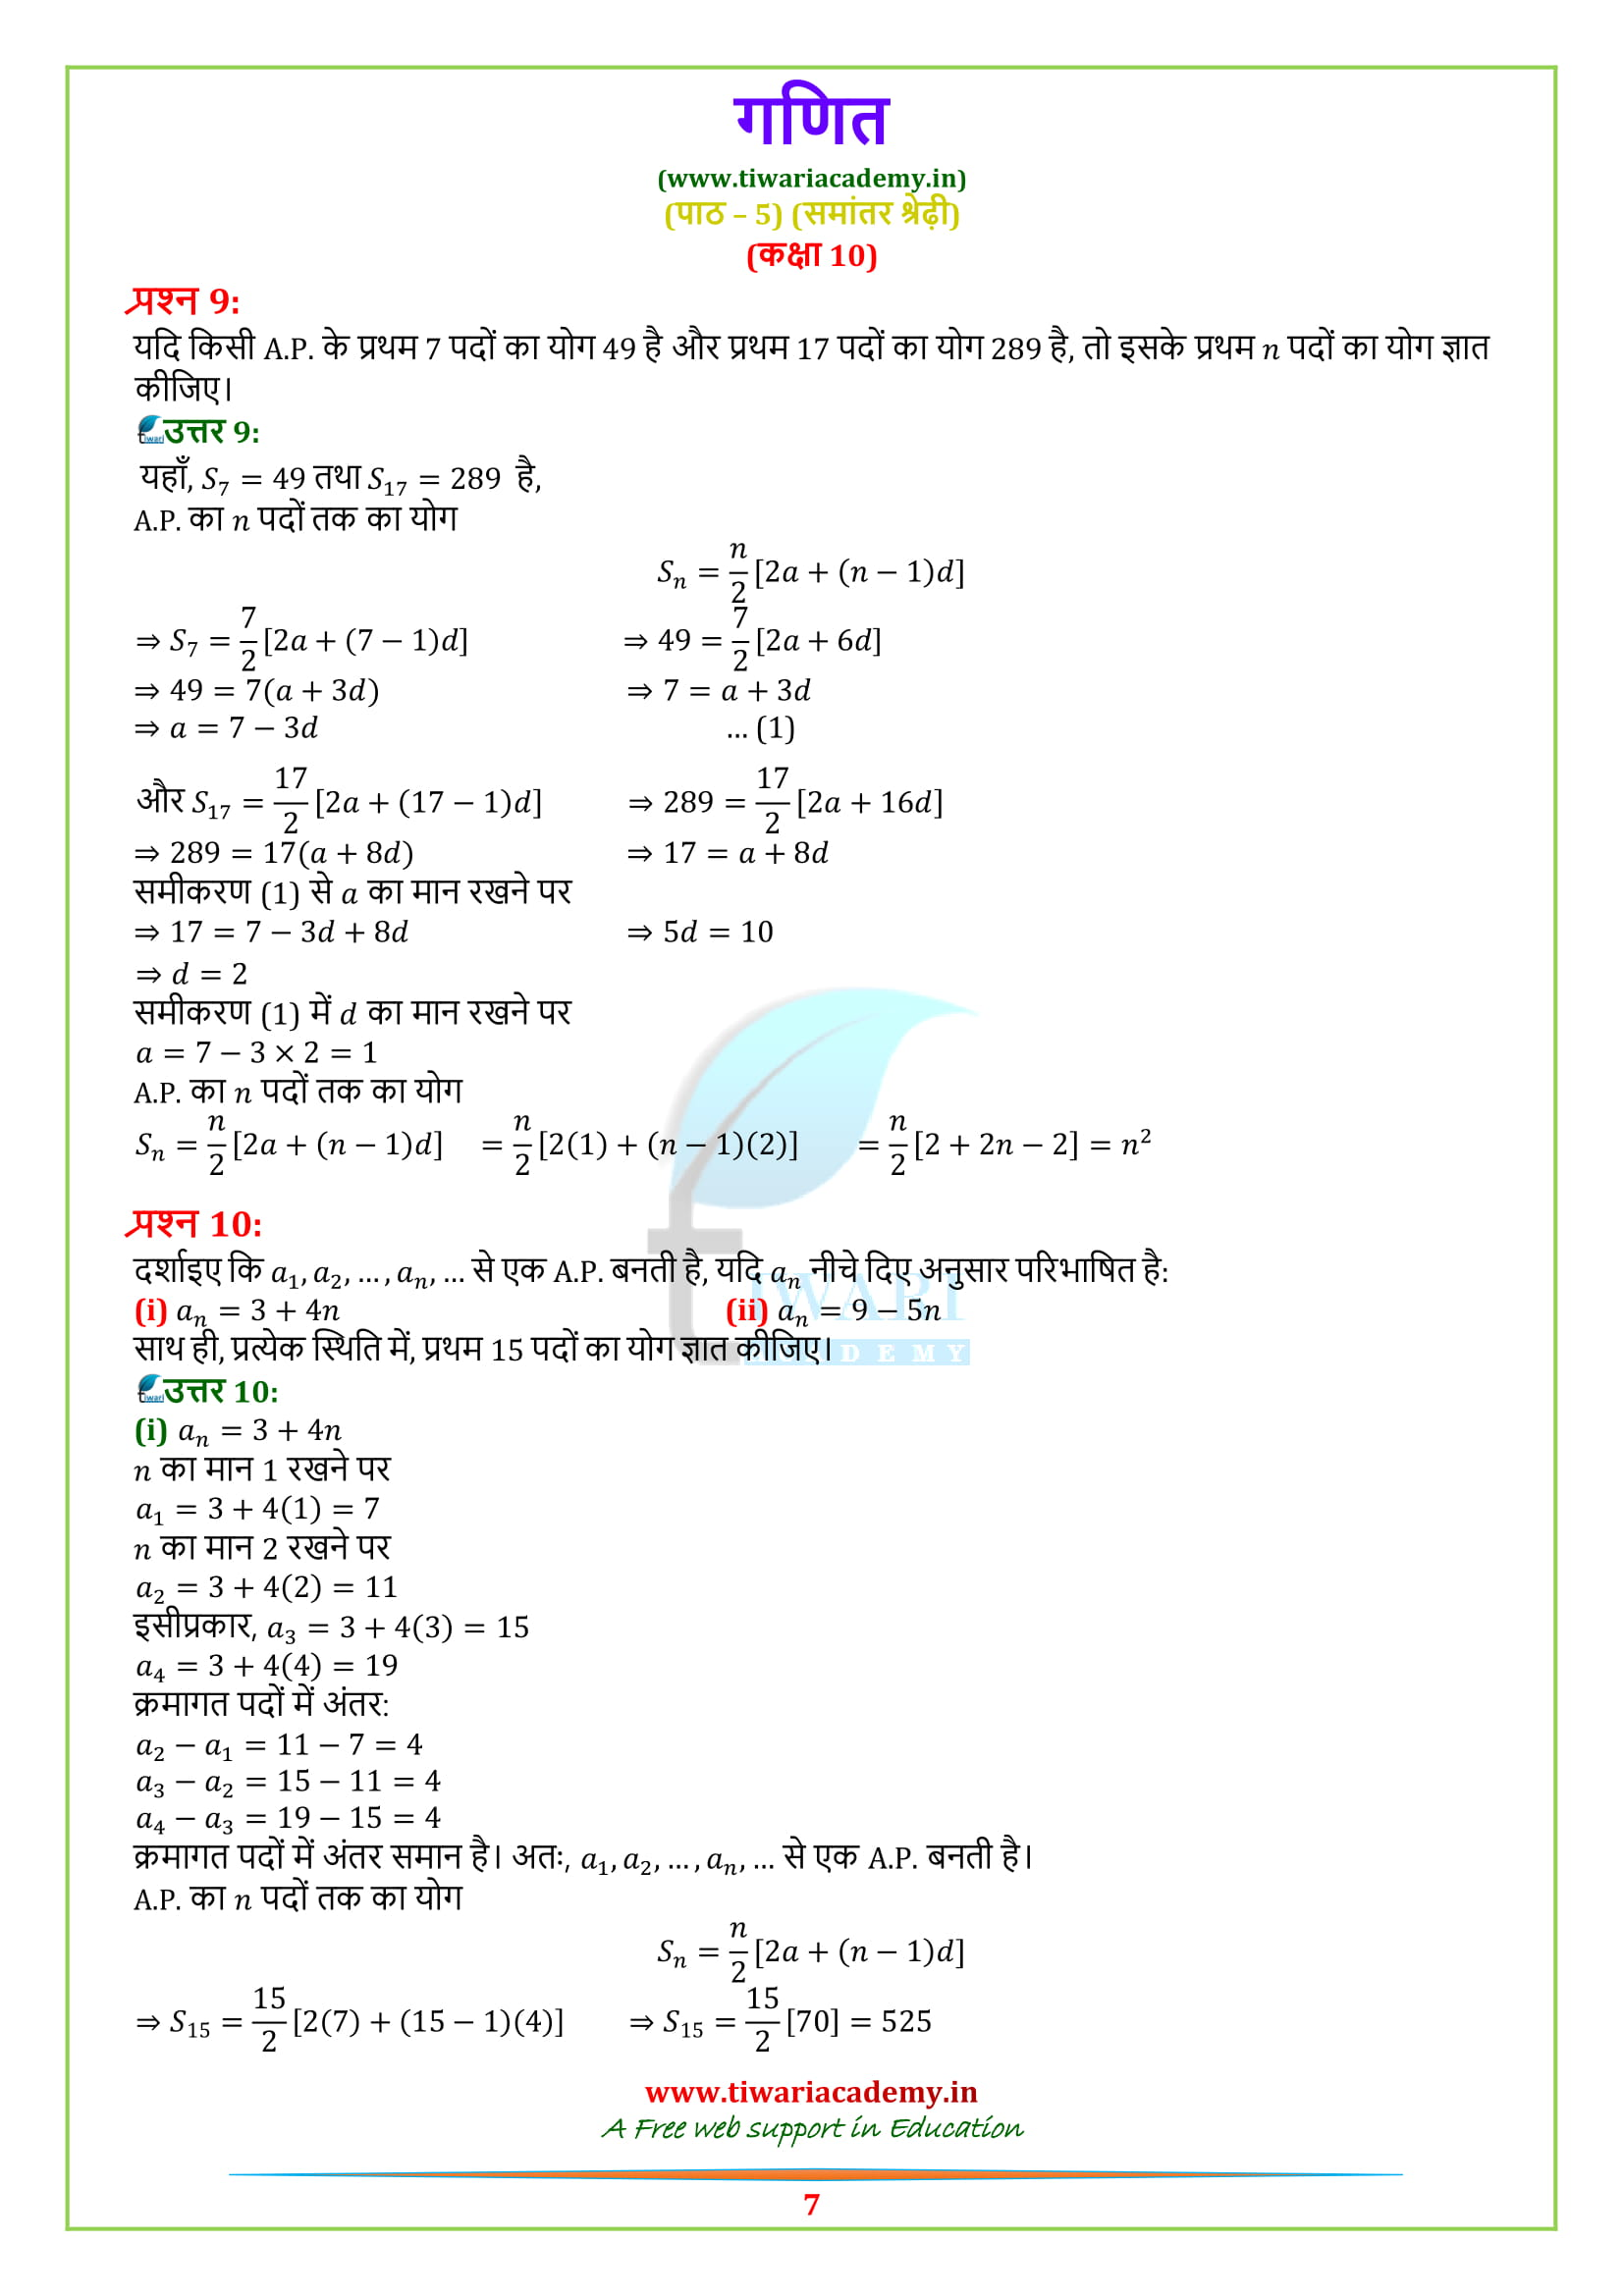 NCERT Solutions for Class 10 Maths Exercise 5.3 latest and updated